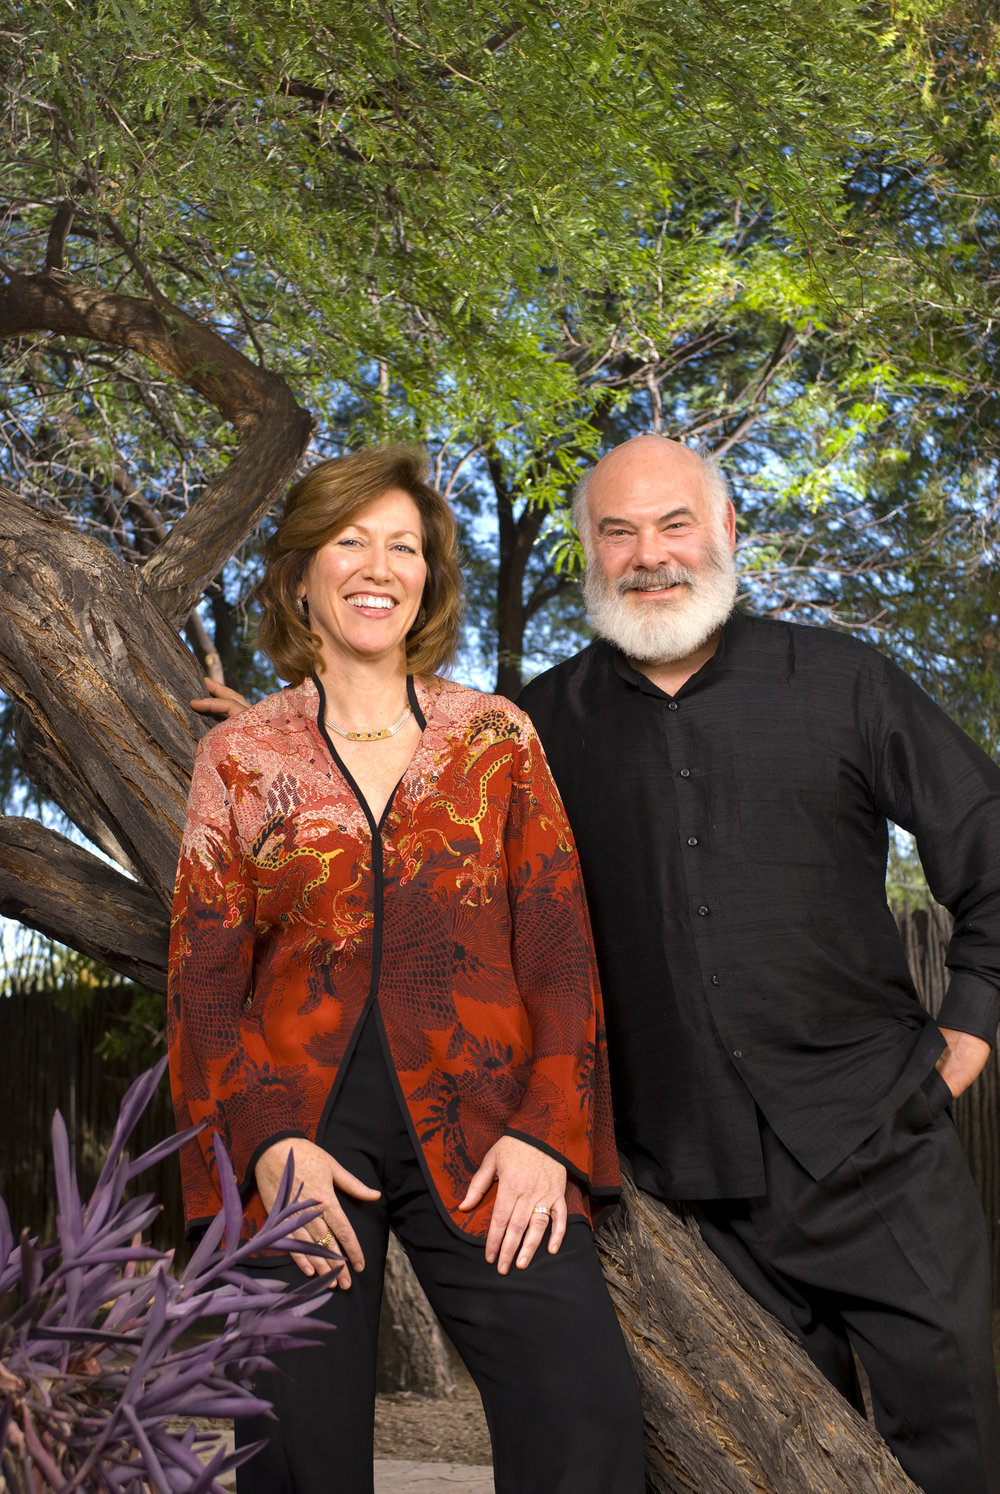 Victoria Maizes:  Executive Director, The Andrew Weil Center for Integrative Medicine  Andrew Weil:  Founder, the Andrew Weil Center for Integrative Medicine